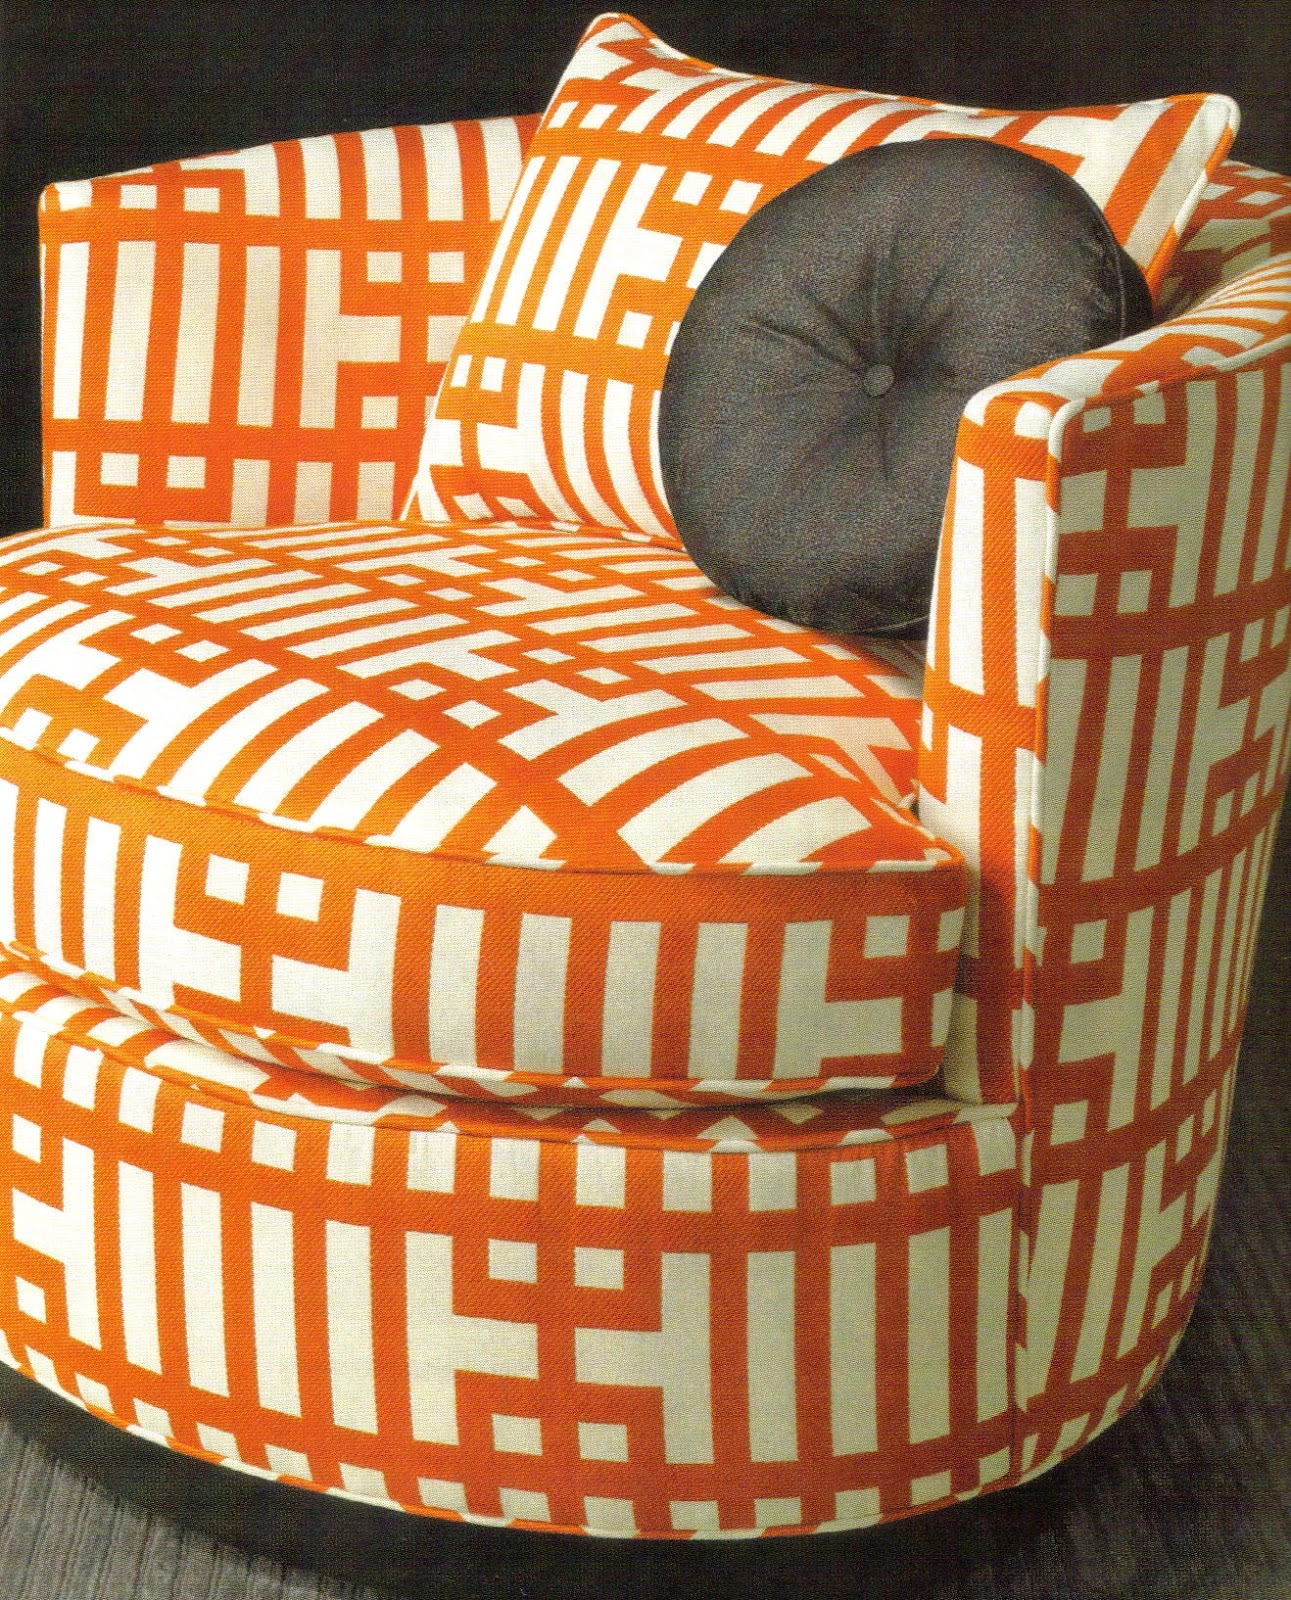 Fab Tangerine Kravet Fabric On Chair And Pillow